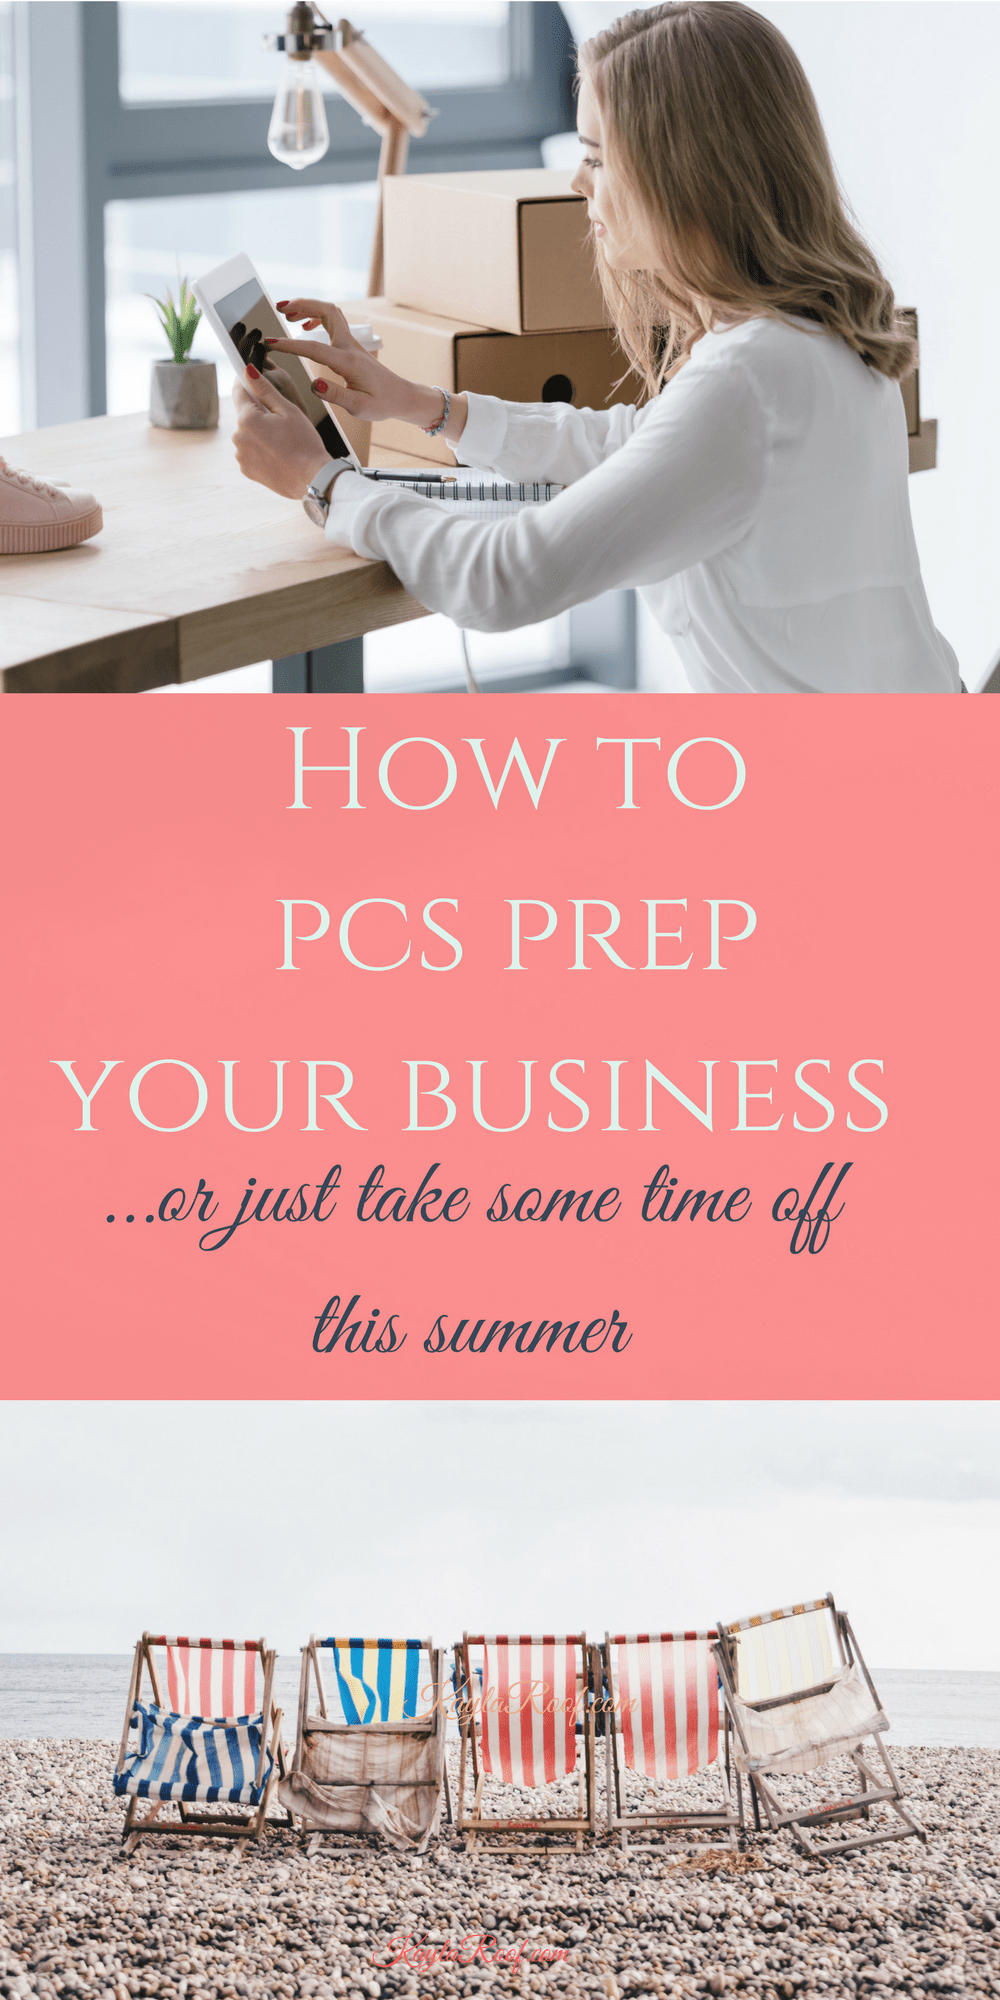 How to PCS Prep Your Business..or take a little time off this summer.